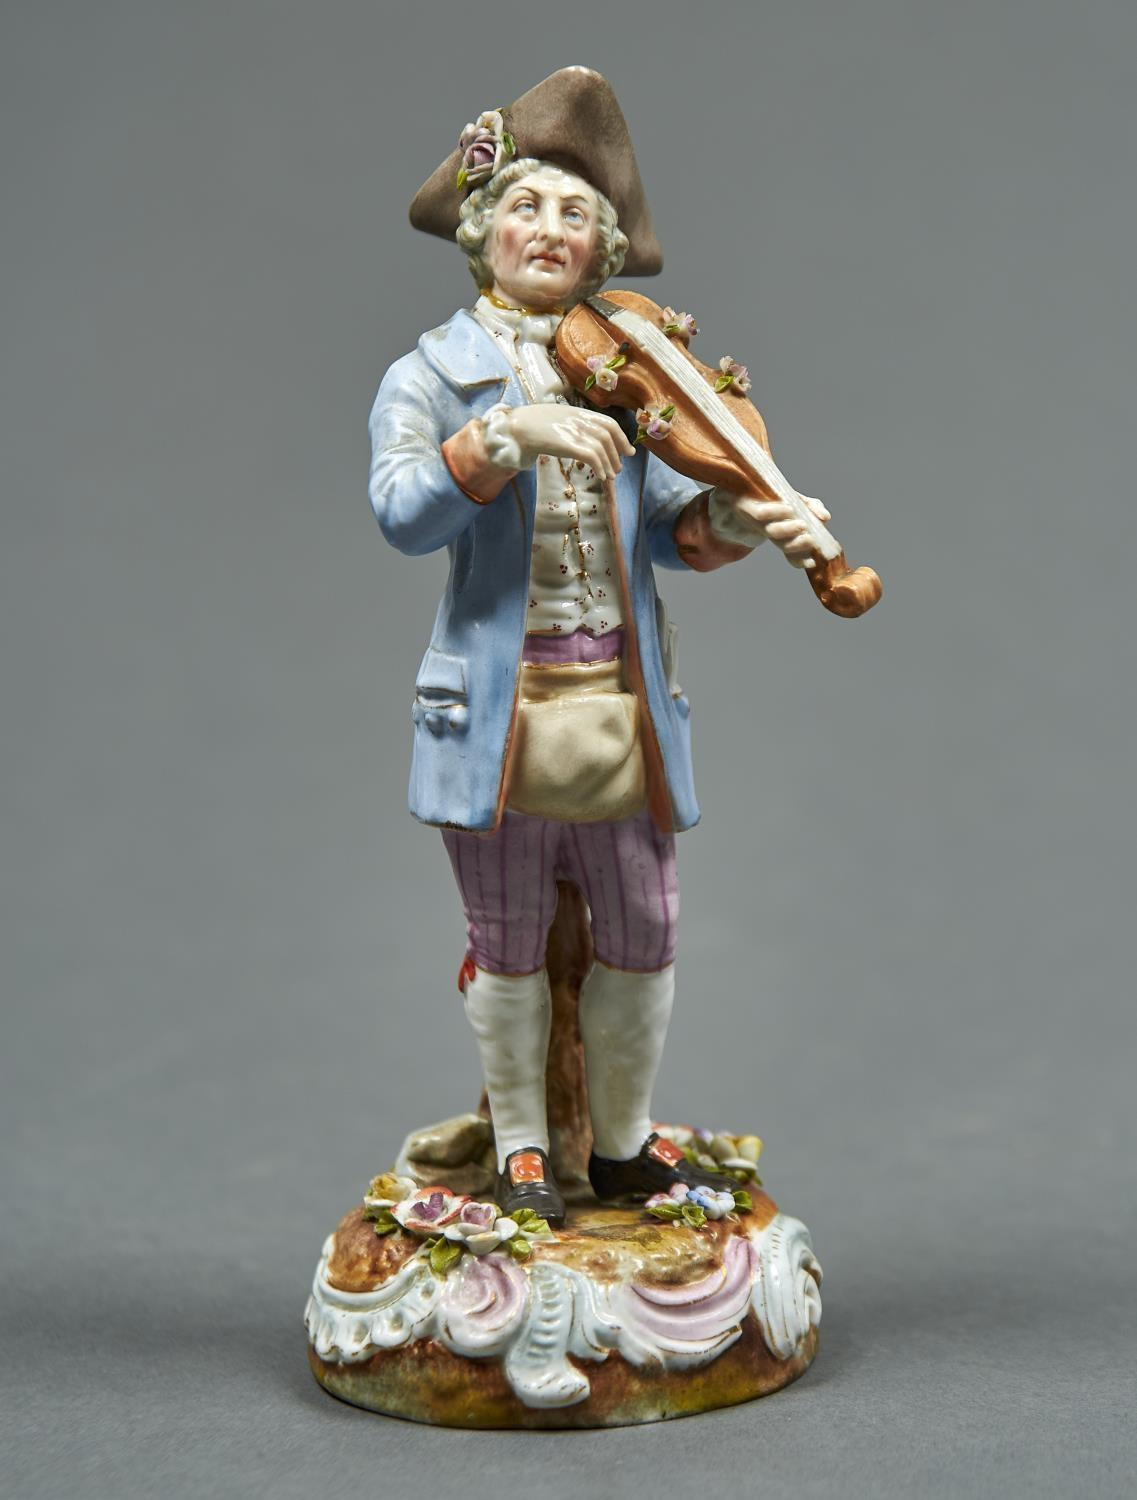 A GERMAN PORCELAIN FIGURE OF A MUSICIAN, LATE 19TH C, PLAYING THE VIOLIN AND DRESSED IN A LIGHT BLUE